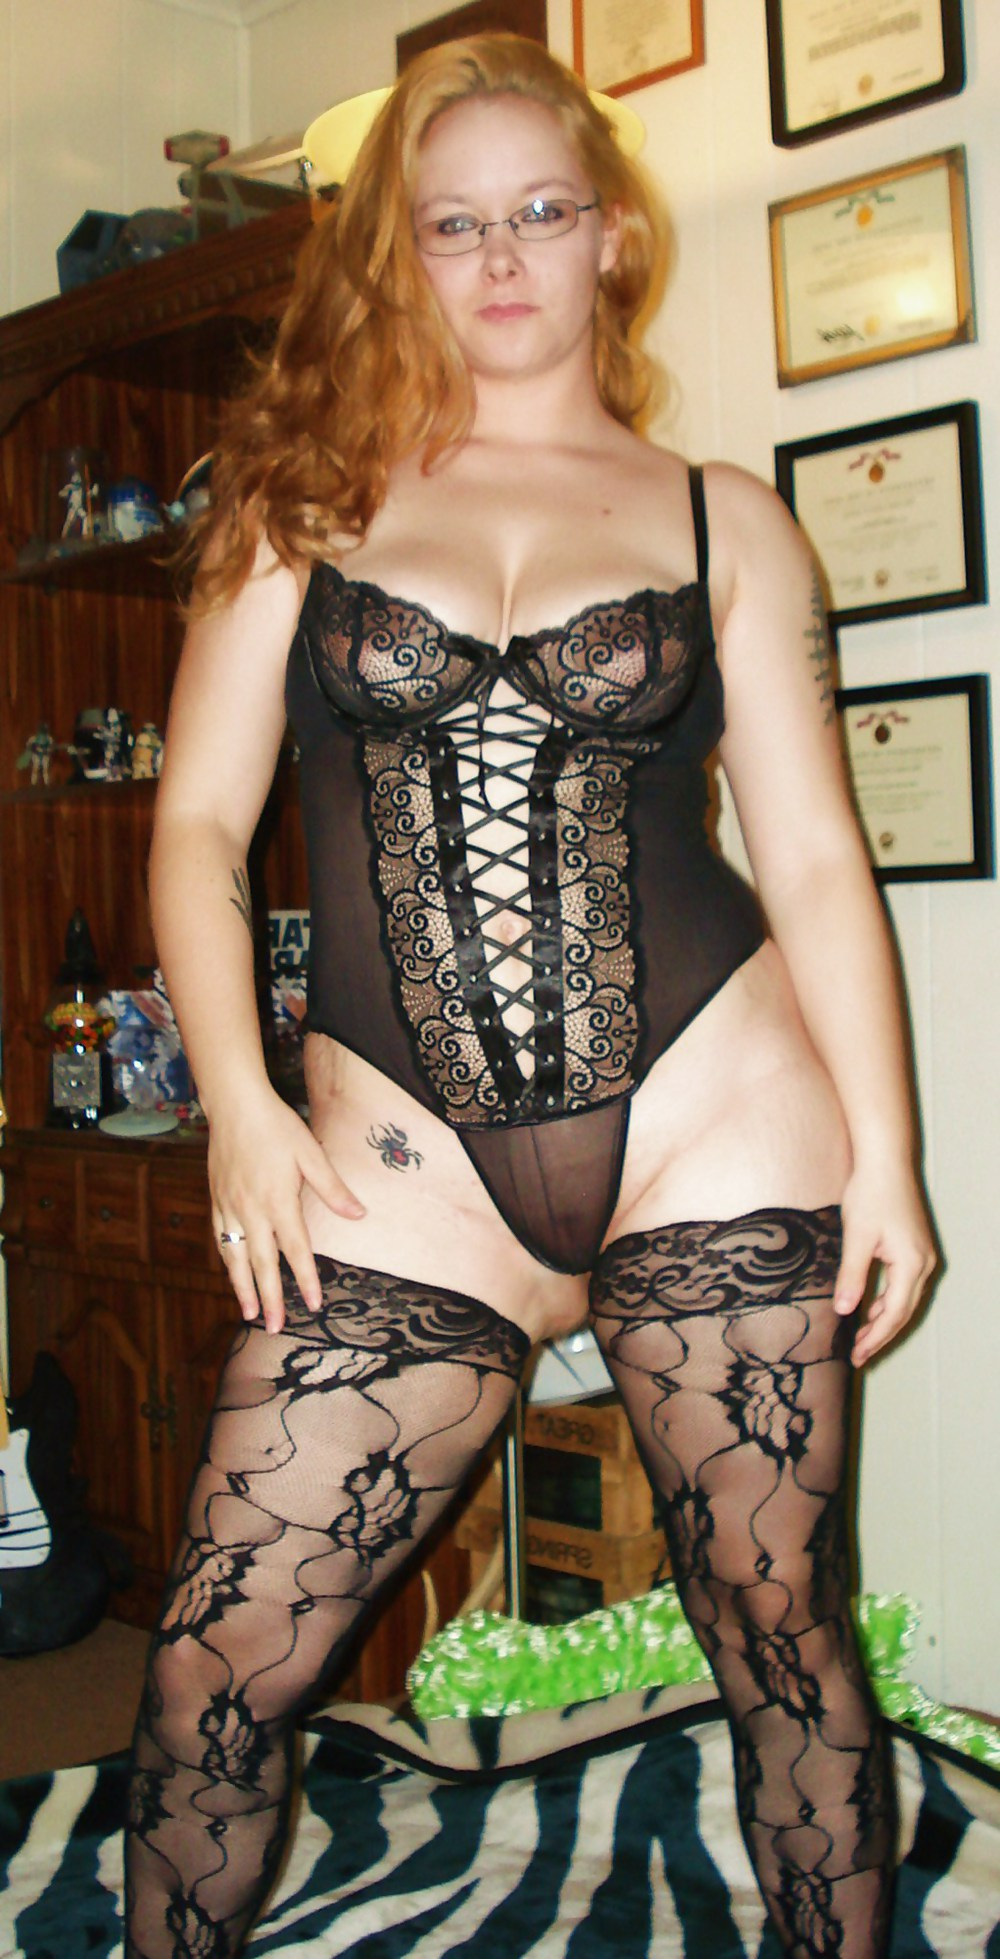 Curvy milf lingerie amateur — photo 5